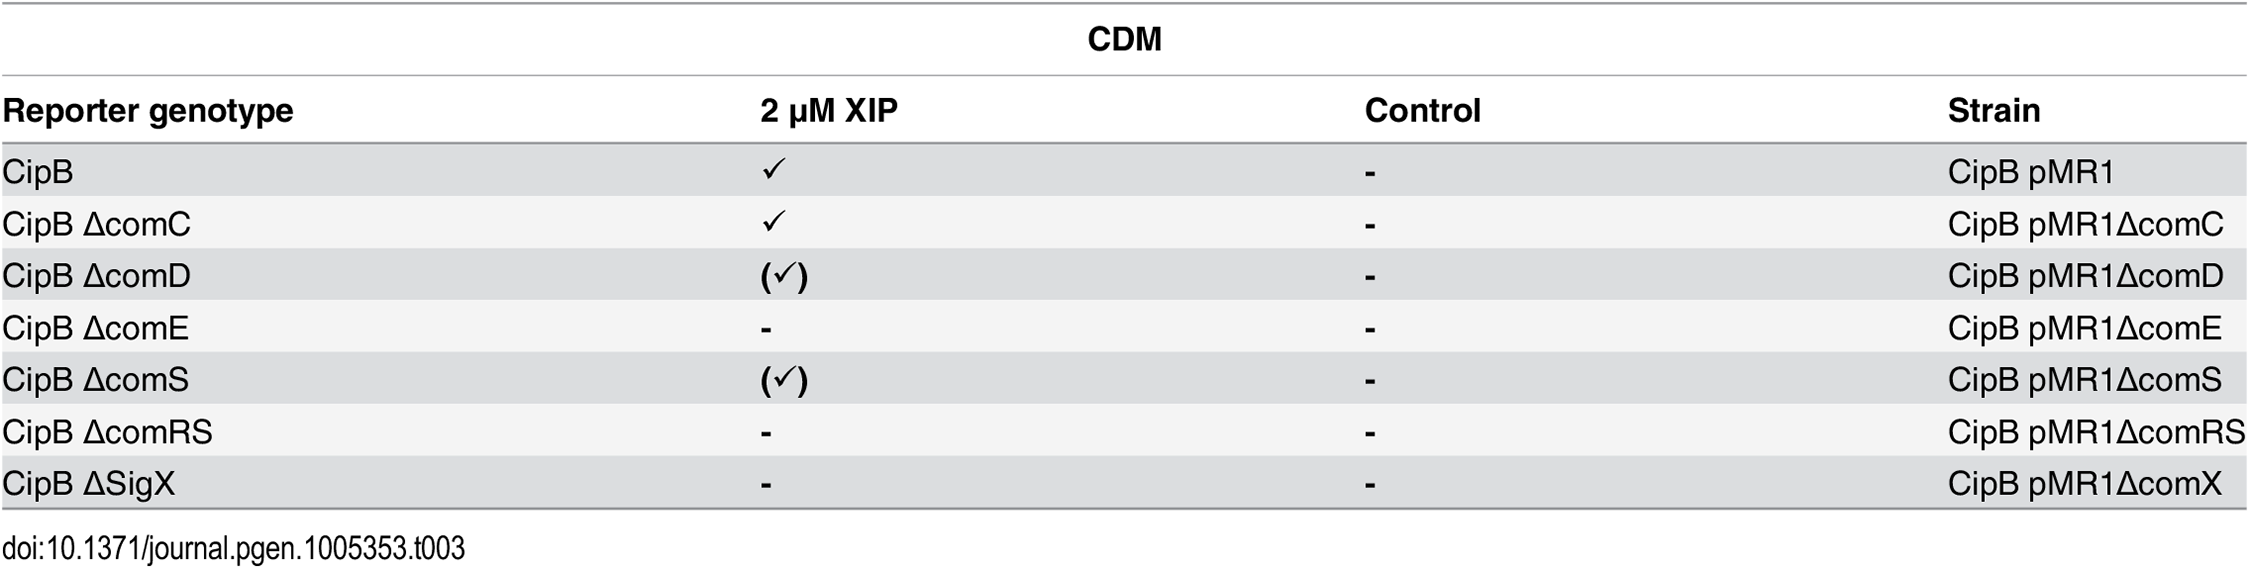 Expression of <i>cipB</i> in different gene deletion background in CDM under XIP induced conditions.